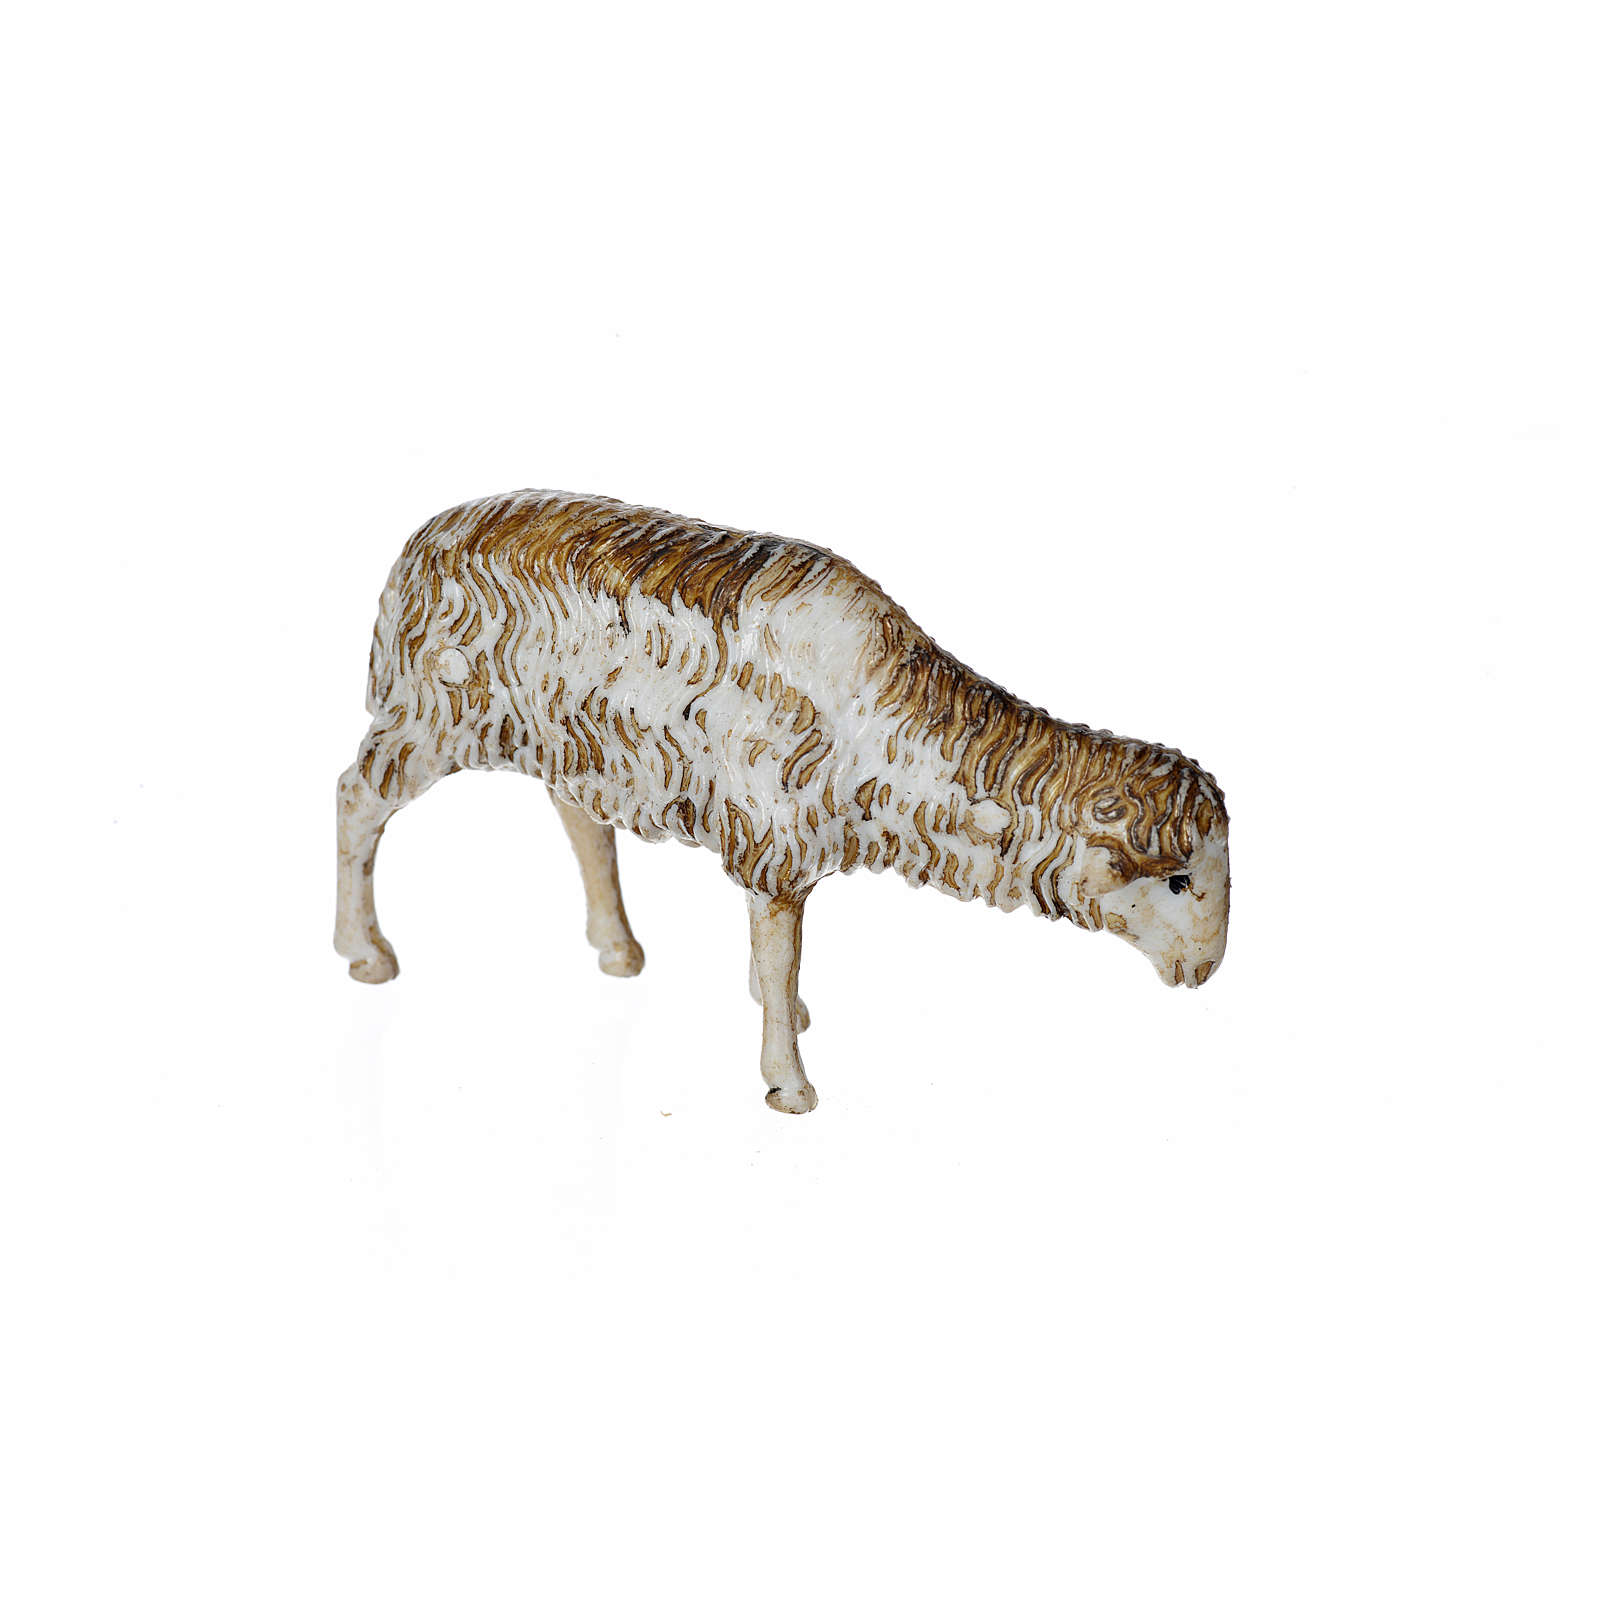 Nativity figurine, sheep 8-10-12 cm 3